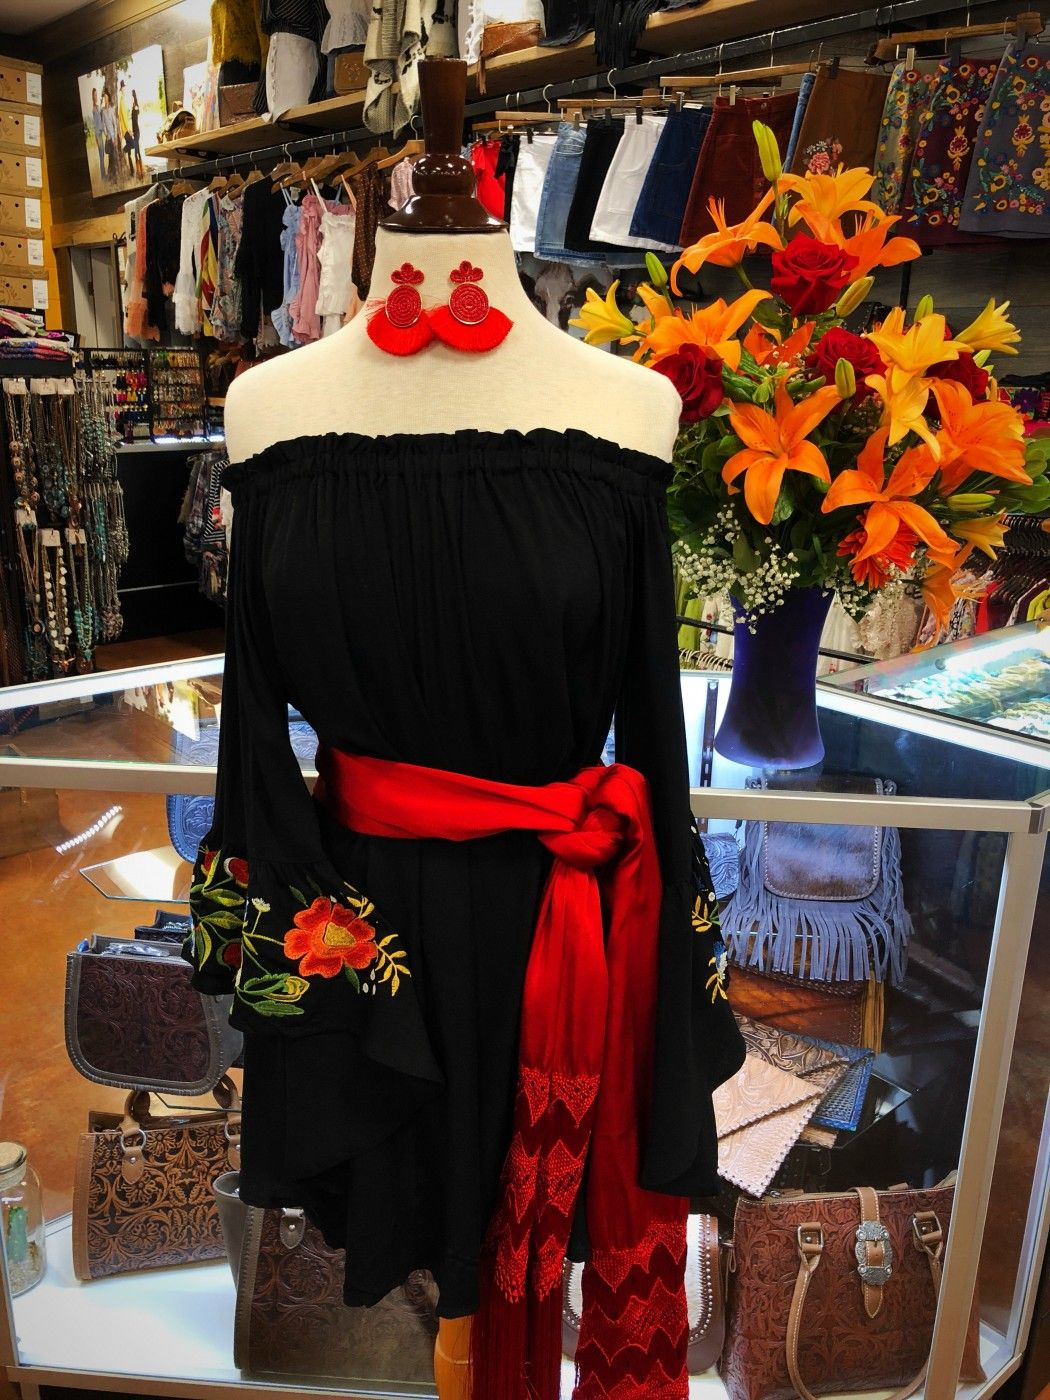 Off The Shoulder Dress With Rose Floral Embroidery Bell Sleeves Black Ale Accessories Mexican Style Dresses Mexican Outfit Fiesta Dress [ 1400 x 1050 Pixel ]